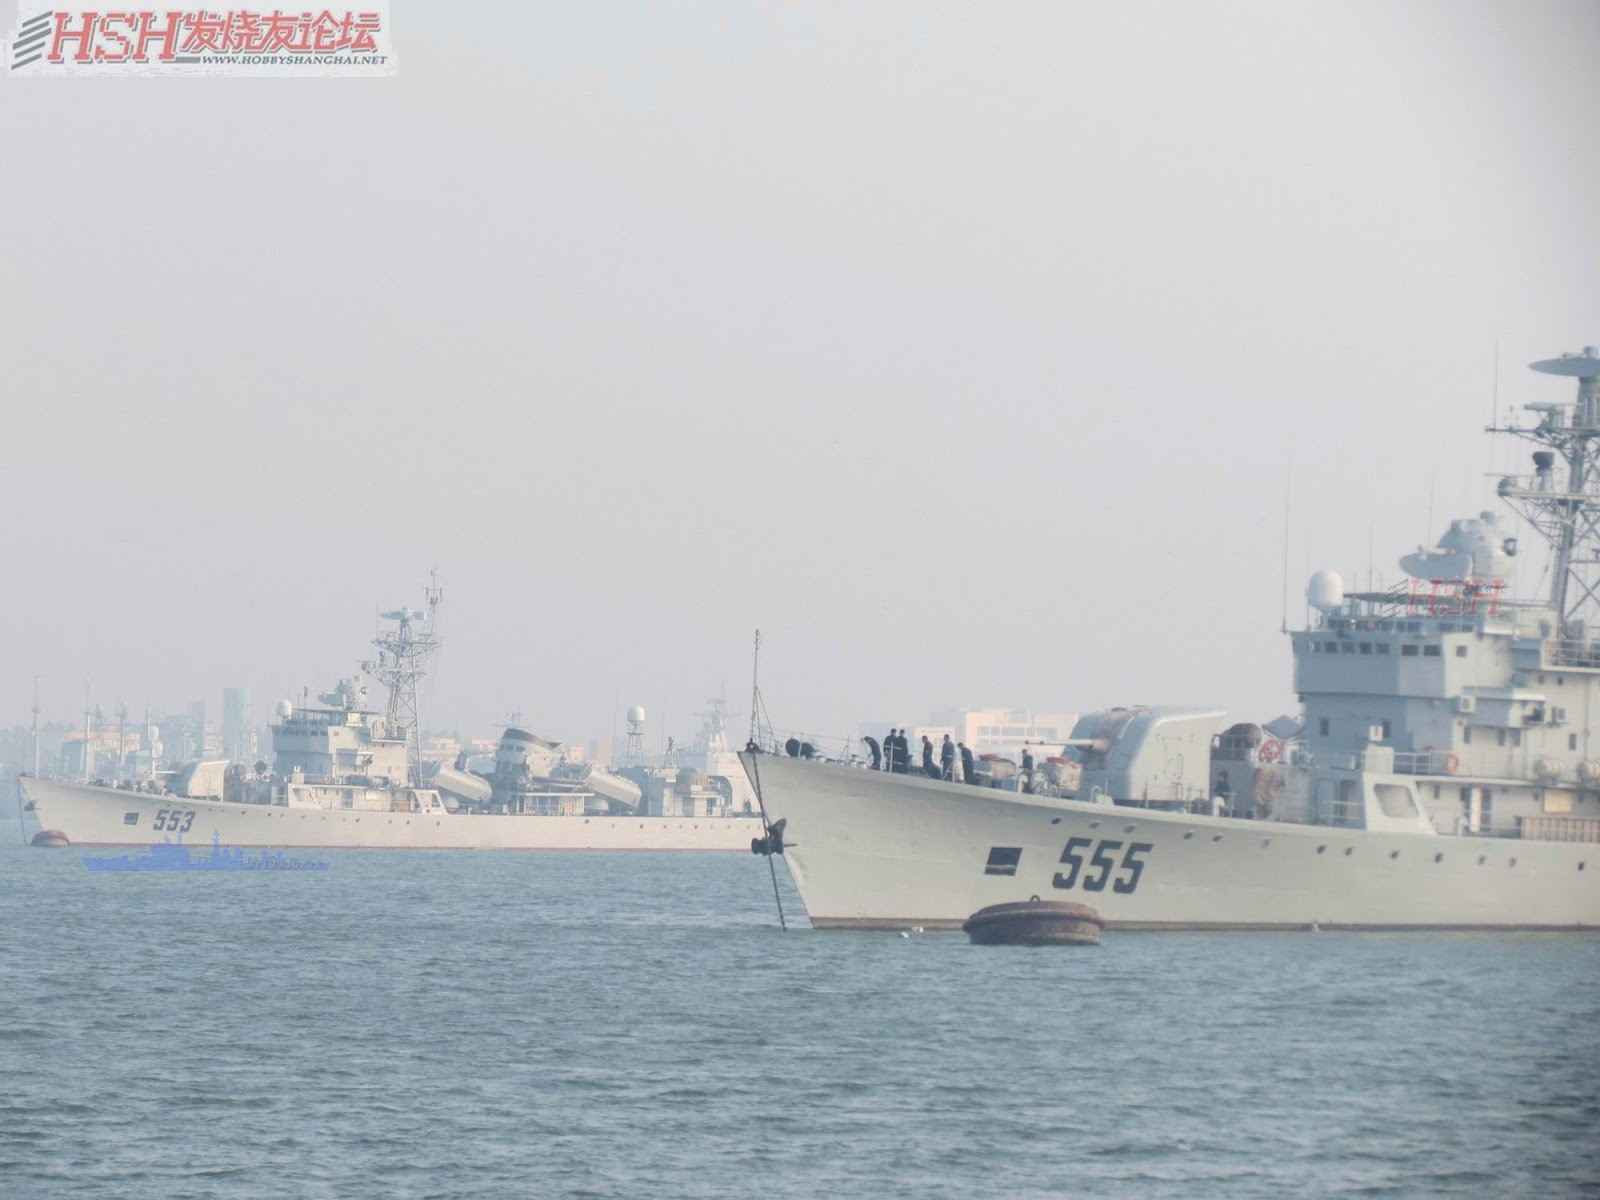 People's Liberation Army Navy ships(Chinese Frigates and